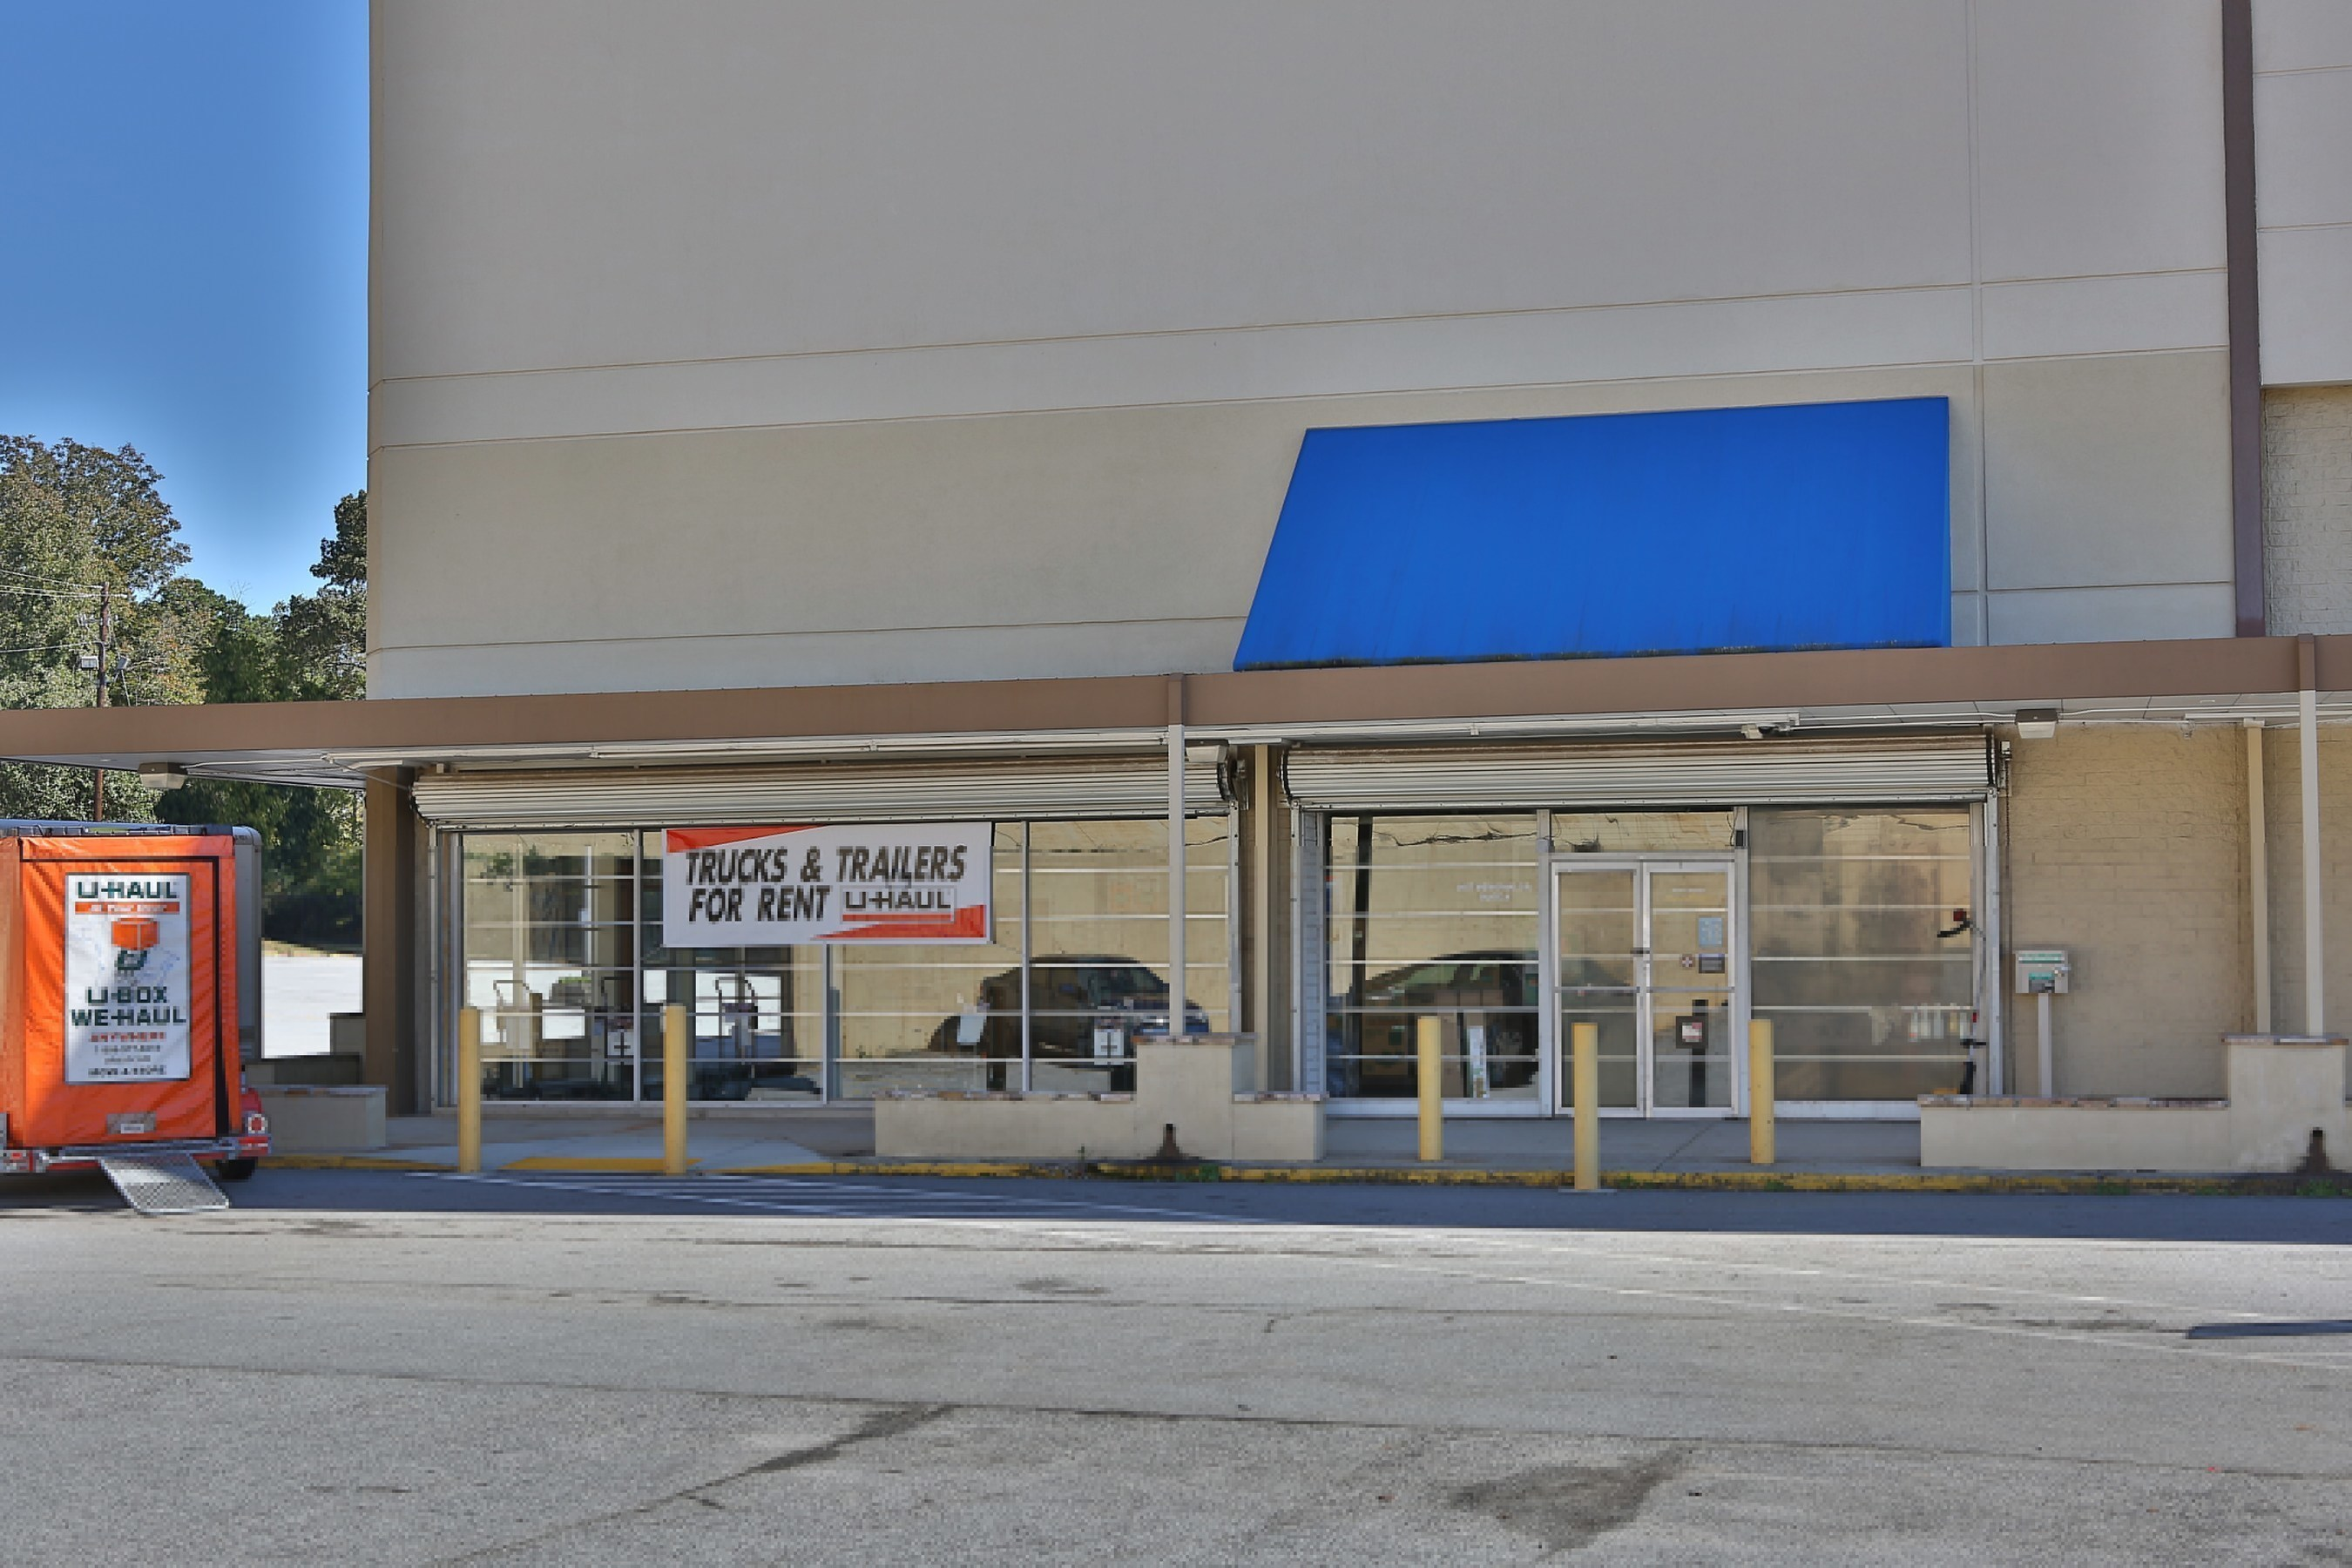 Do-it-yourself movers in DeKalb County have graciously welcomed a centralized U-Haul(R) store to meet their demands at U-Haul Moving & Storage of Decatur at 3653 Memorial Drive.